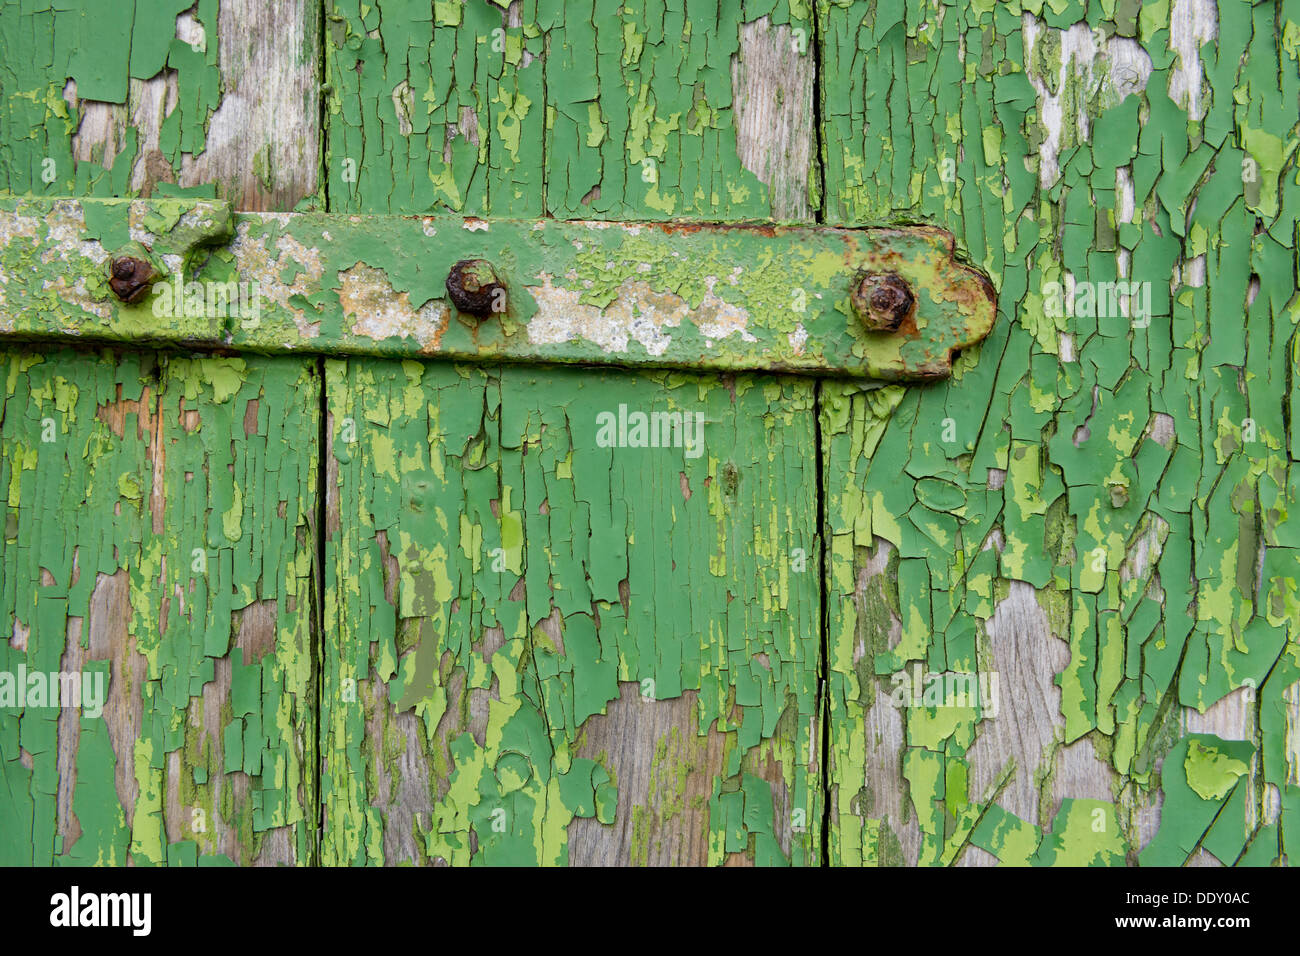 Peeling green paint on wooden boards and a hinge - Stock Image